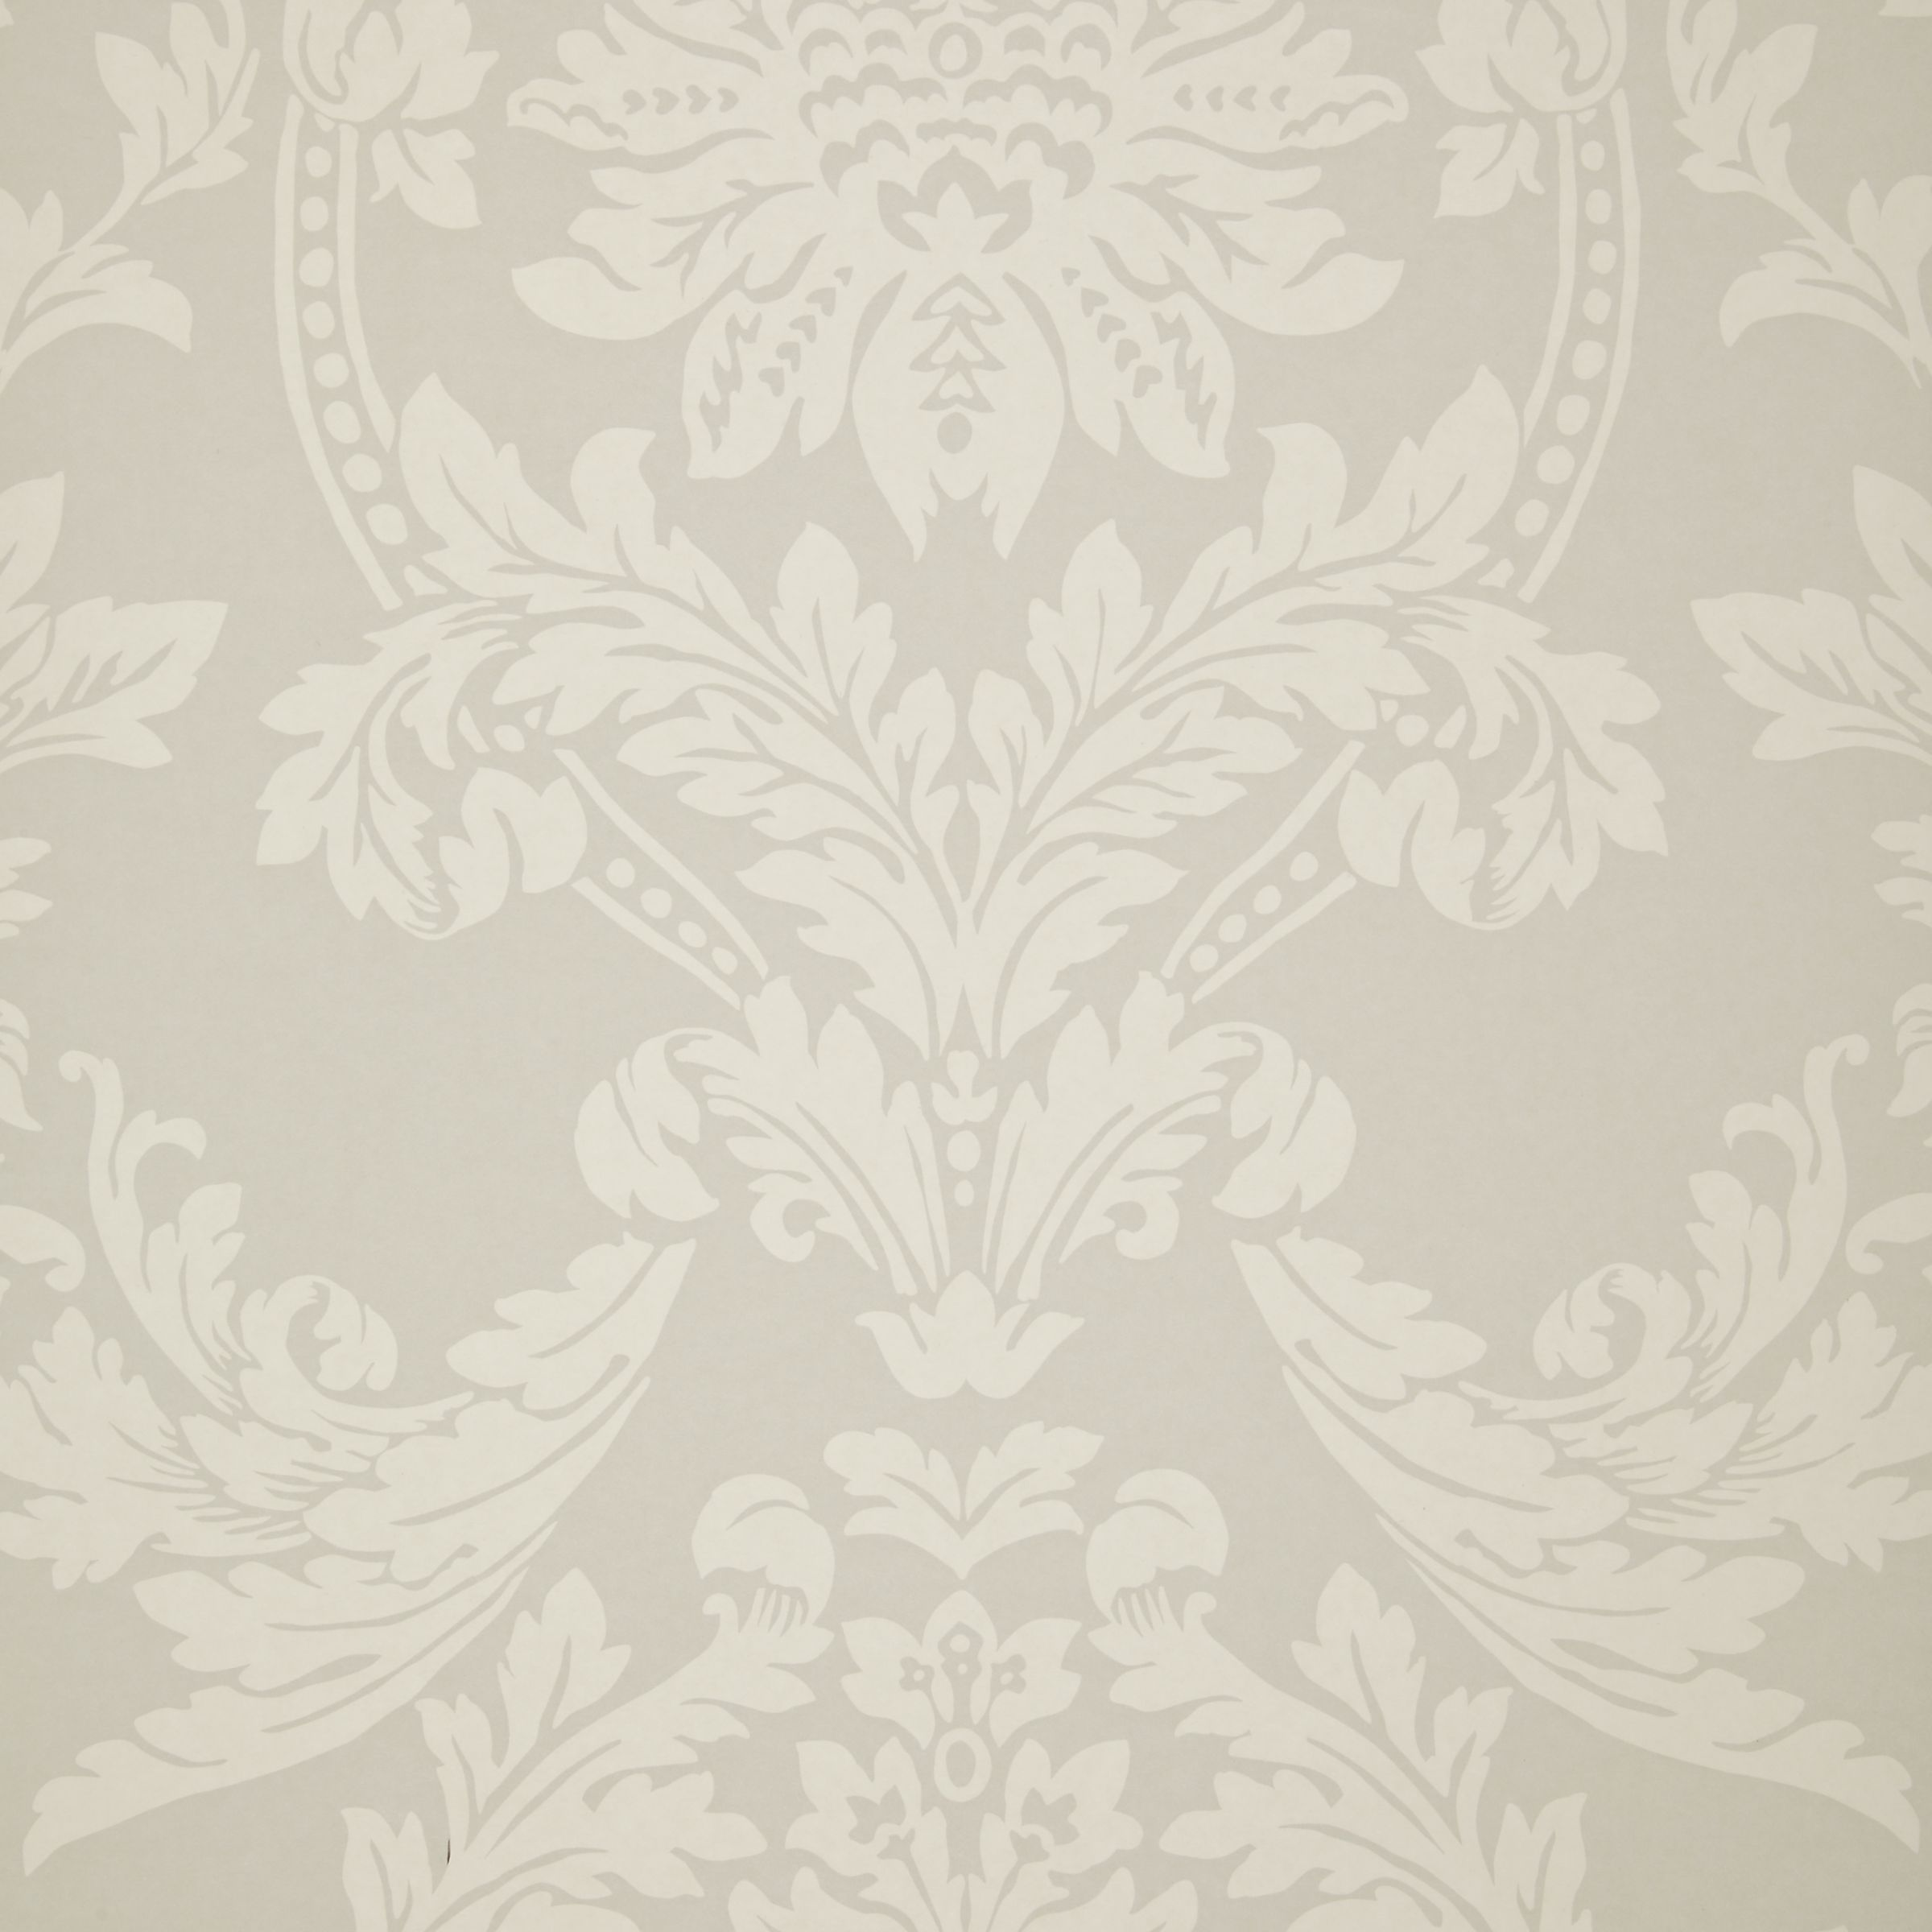 Buy John Lewis Ornamental Damask Wallpaper John Lewis